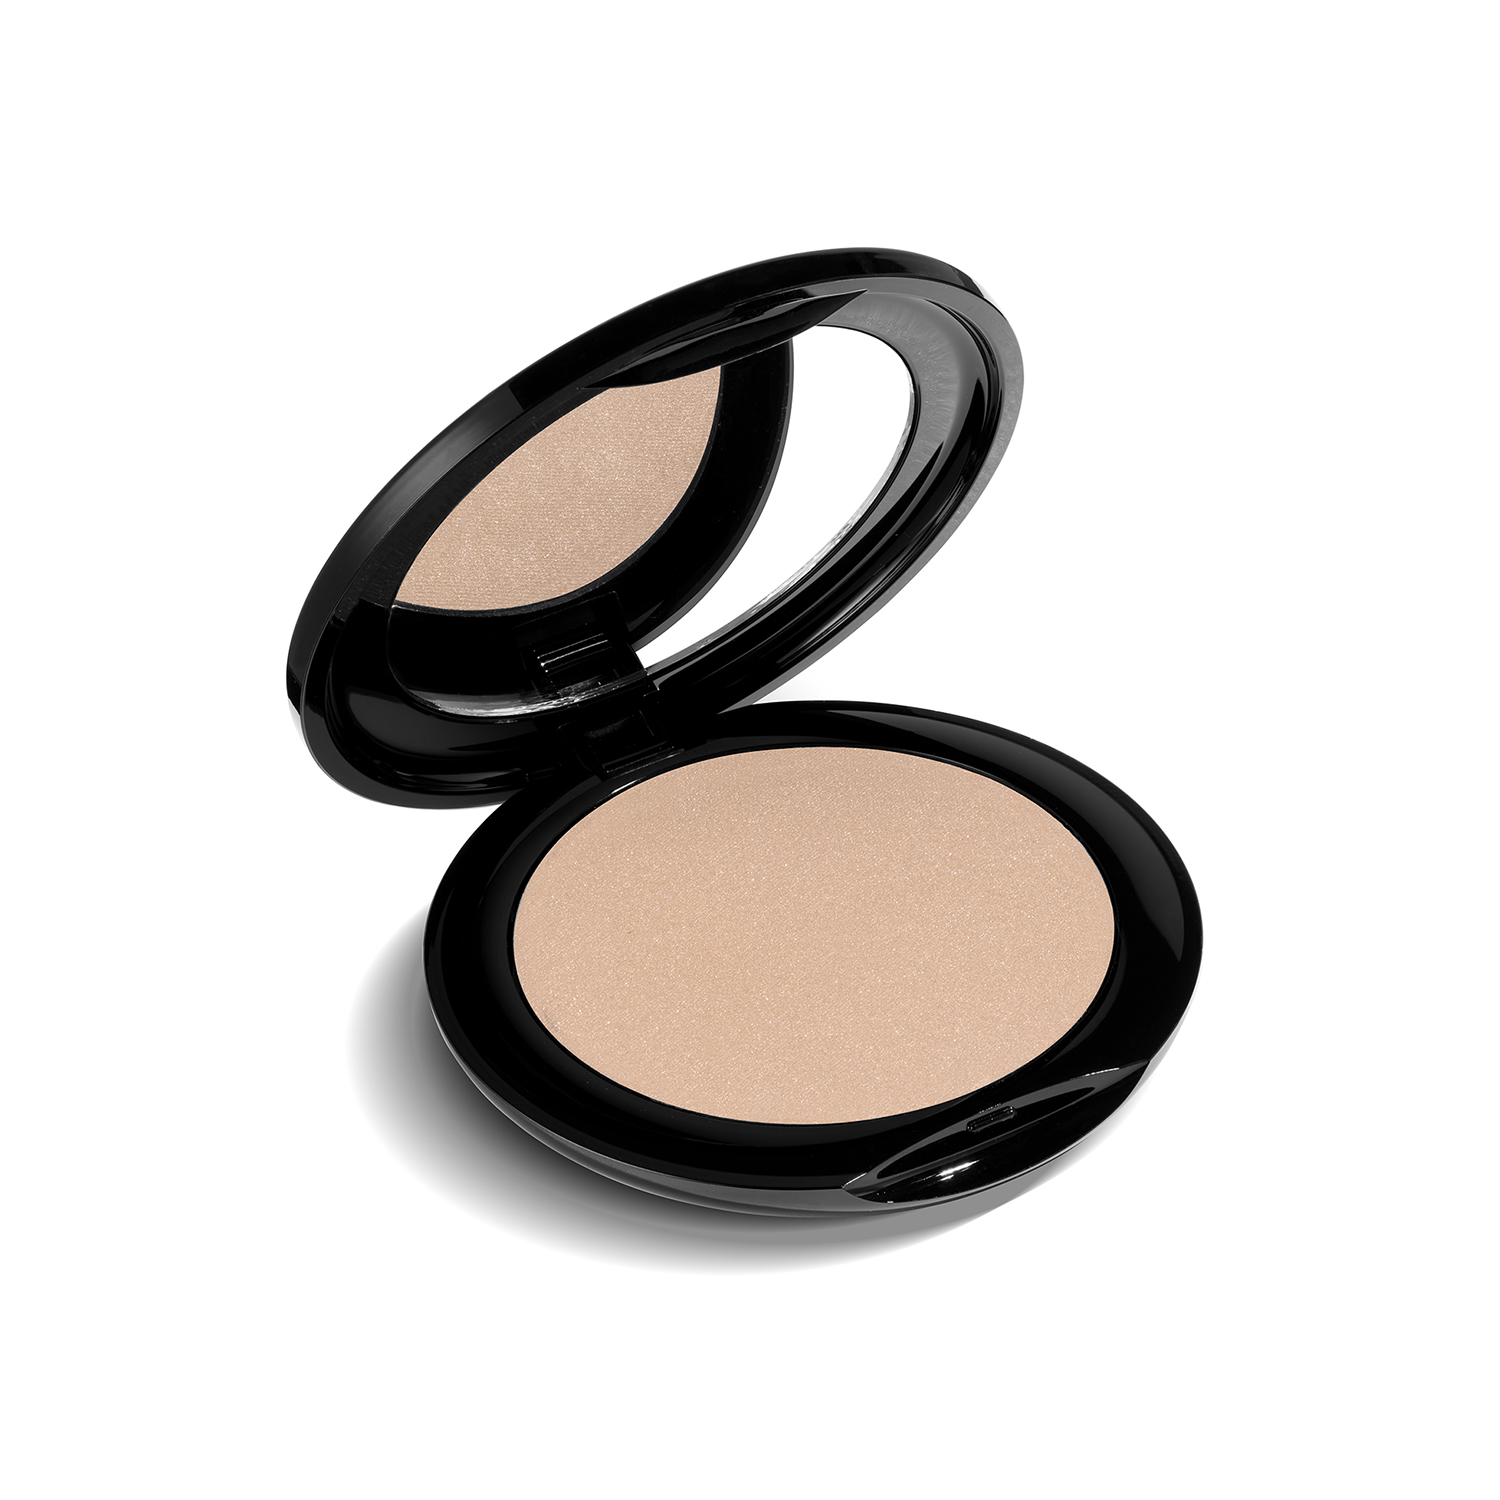 PERFECT FINISH COMPACT FACE POWDER